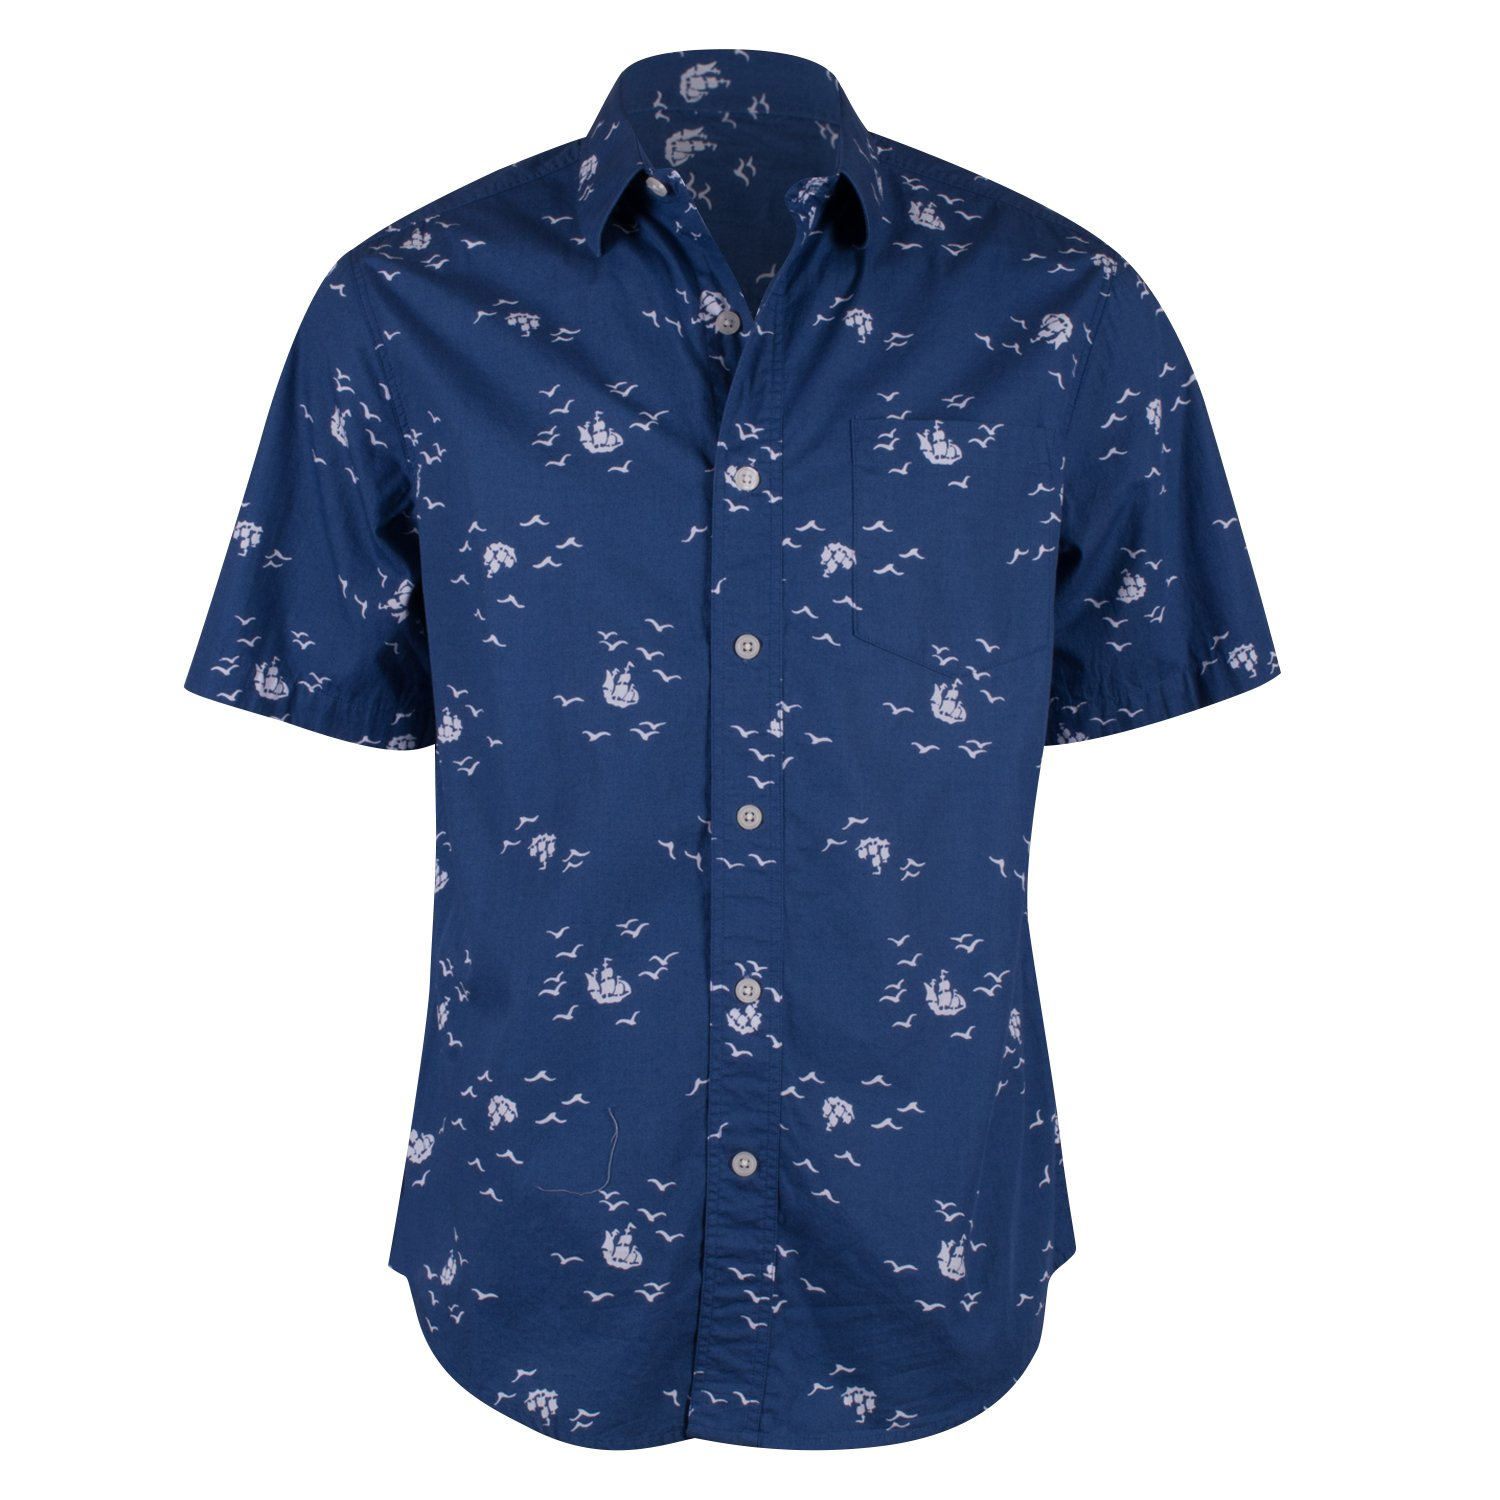 cca83d70457a Campia Moda Men s Washed Cotton Modern Fit Print Shirt (Navy Abstract Bird  and Ship Print